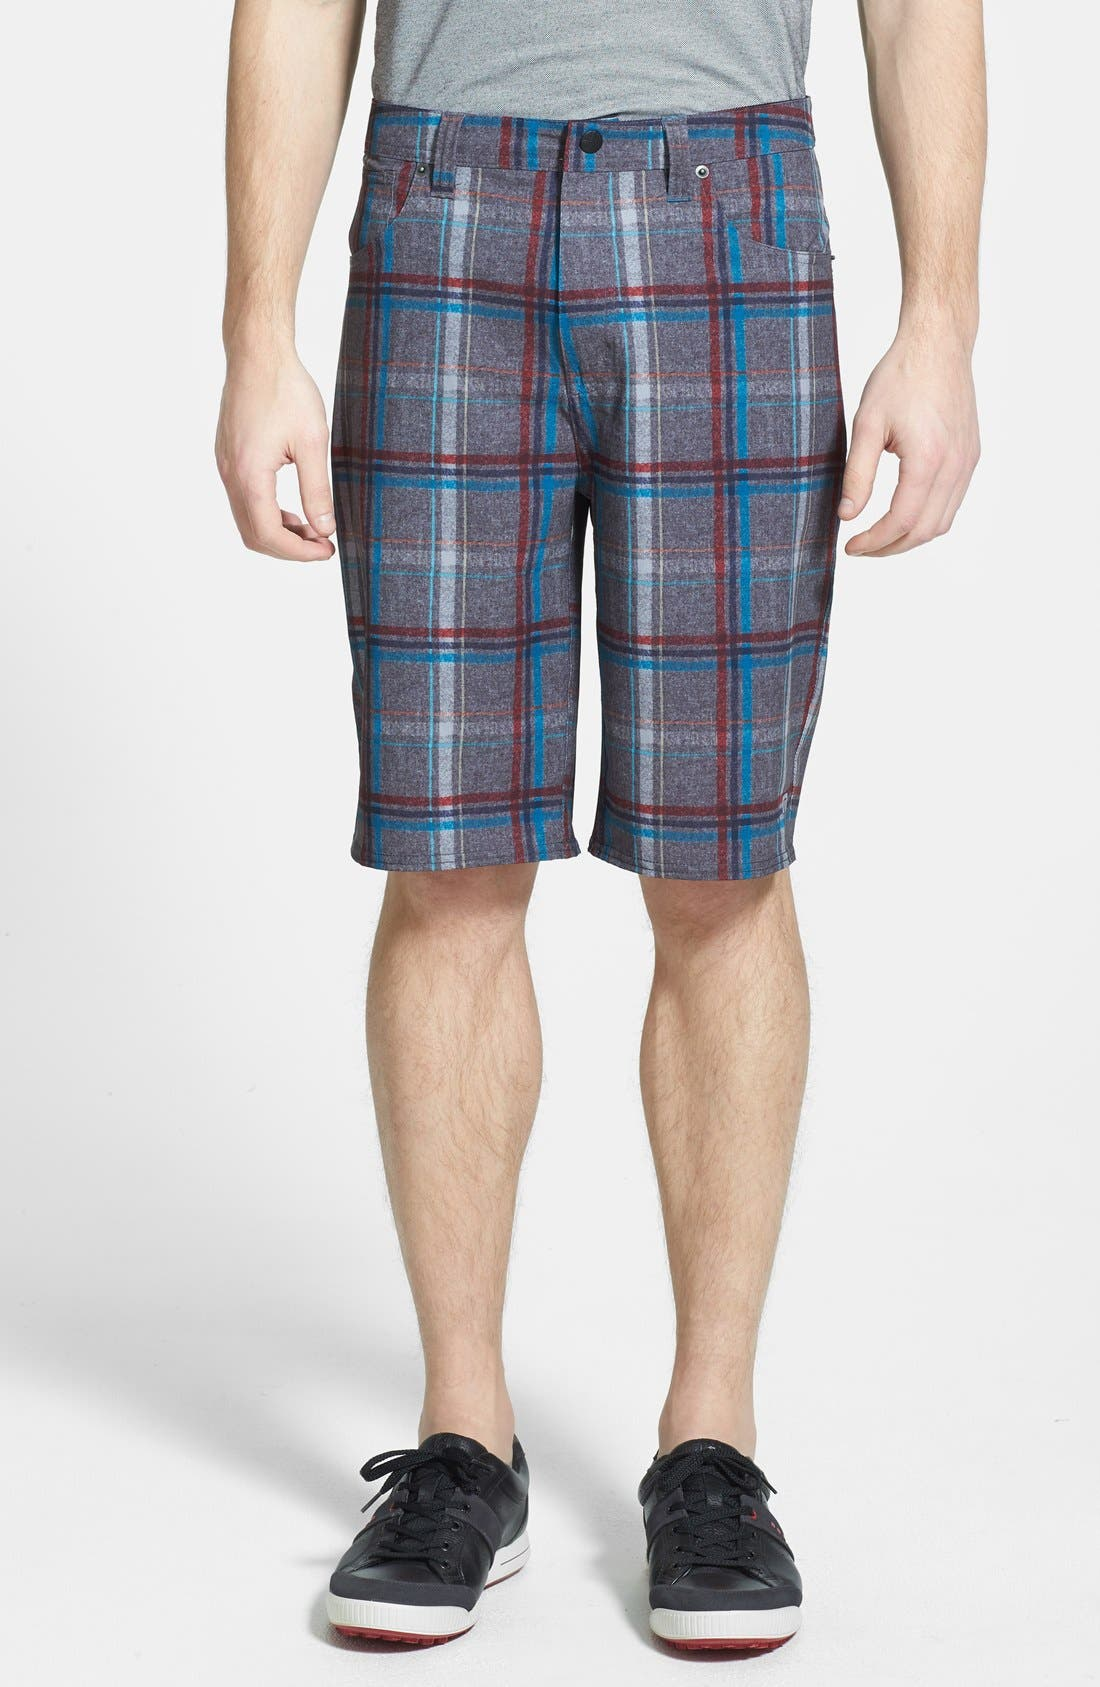 'Marsh' Performance Stretch Shorts,                         Main,                         color, Grey/ Red/ Blue Plaid